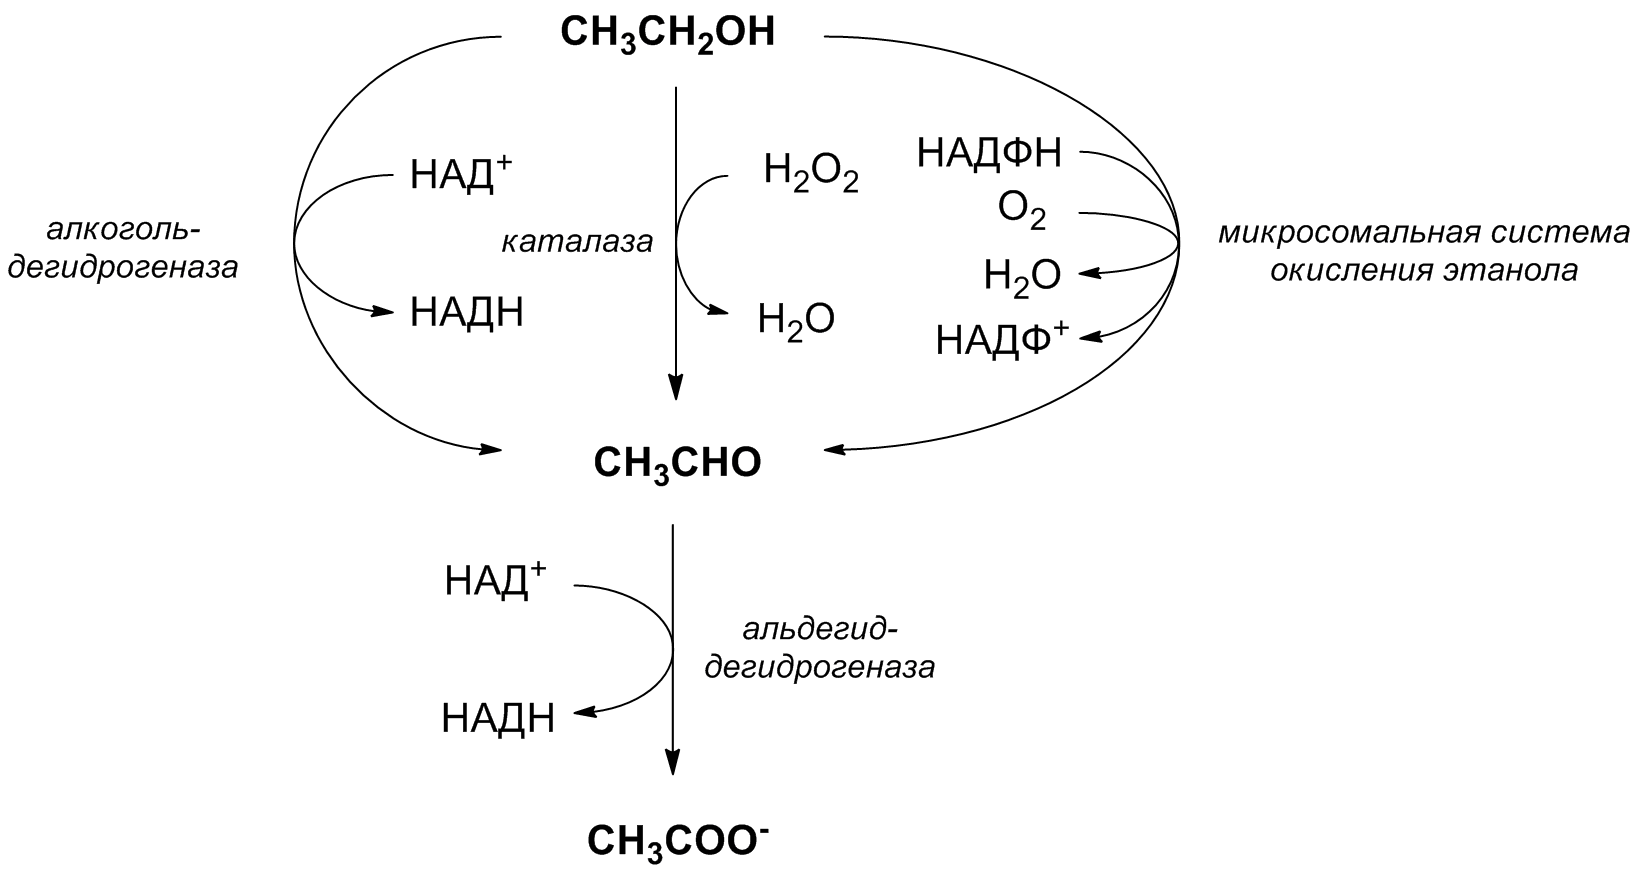 What Is Ethanol >> File:Ethanol metabolism.png - Wikimedia Commons